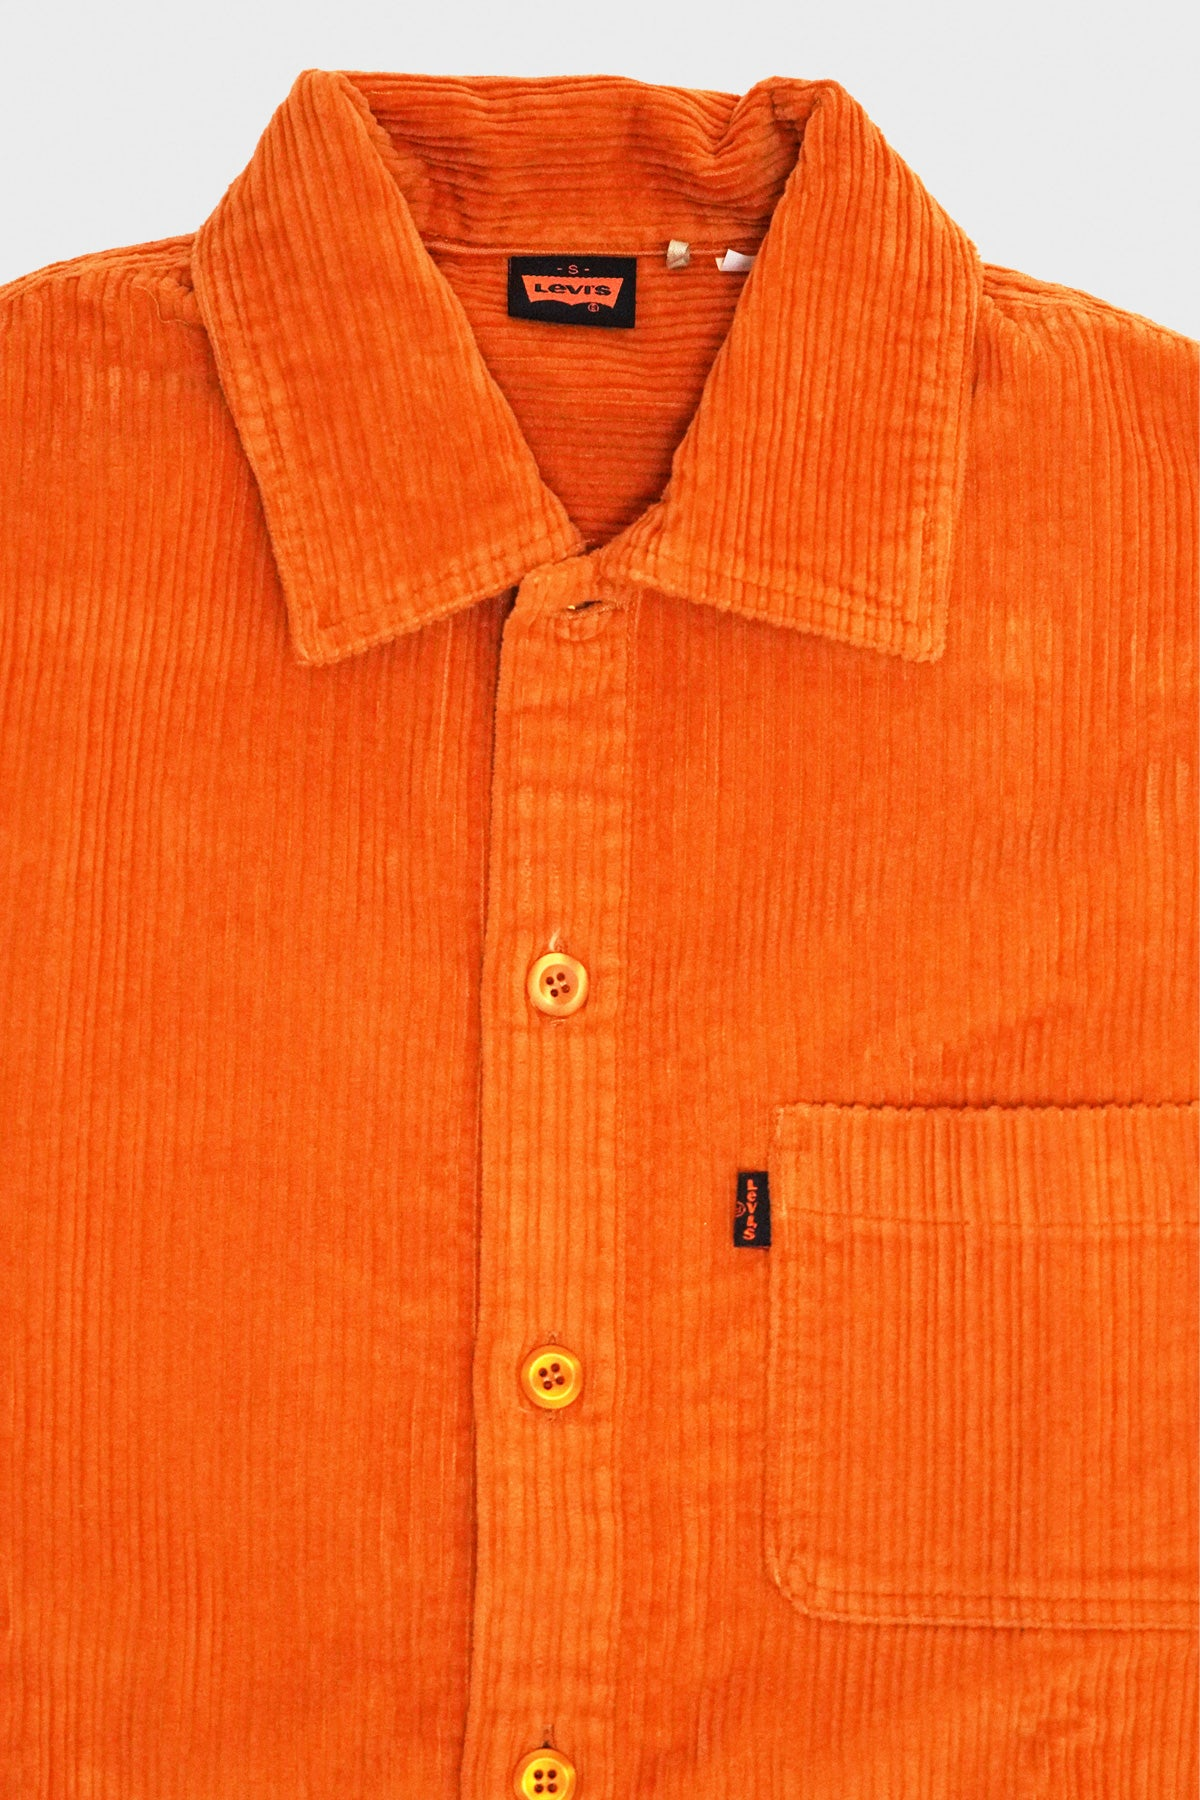 Levi's Vintage Clothing - Cord Shirt - Golden Oak - Canoe Club